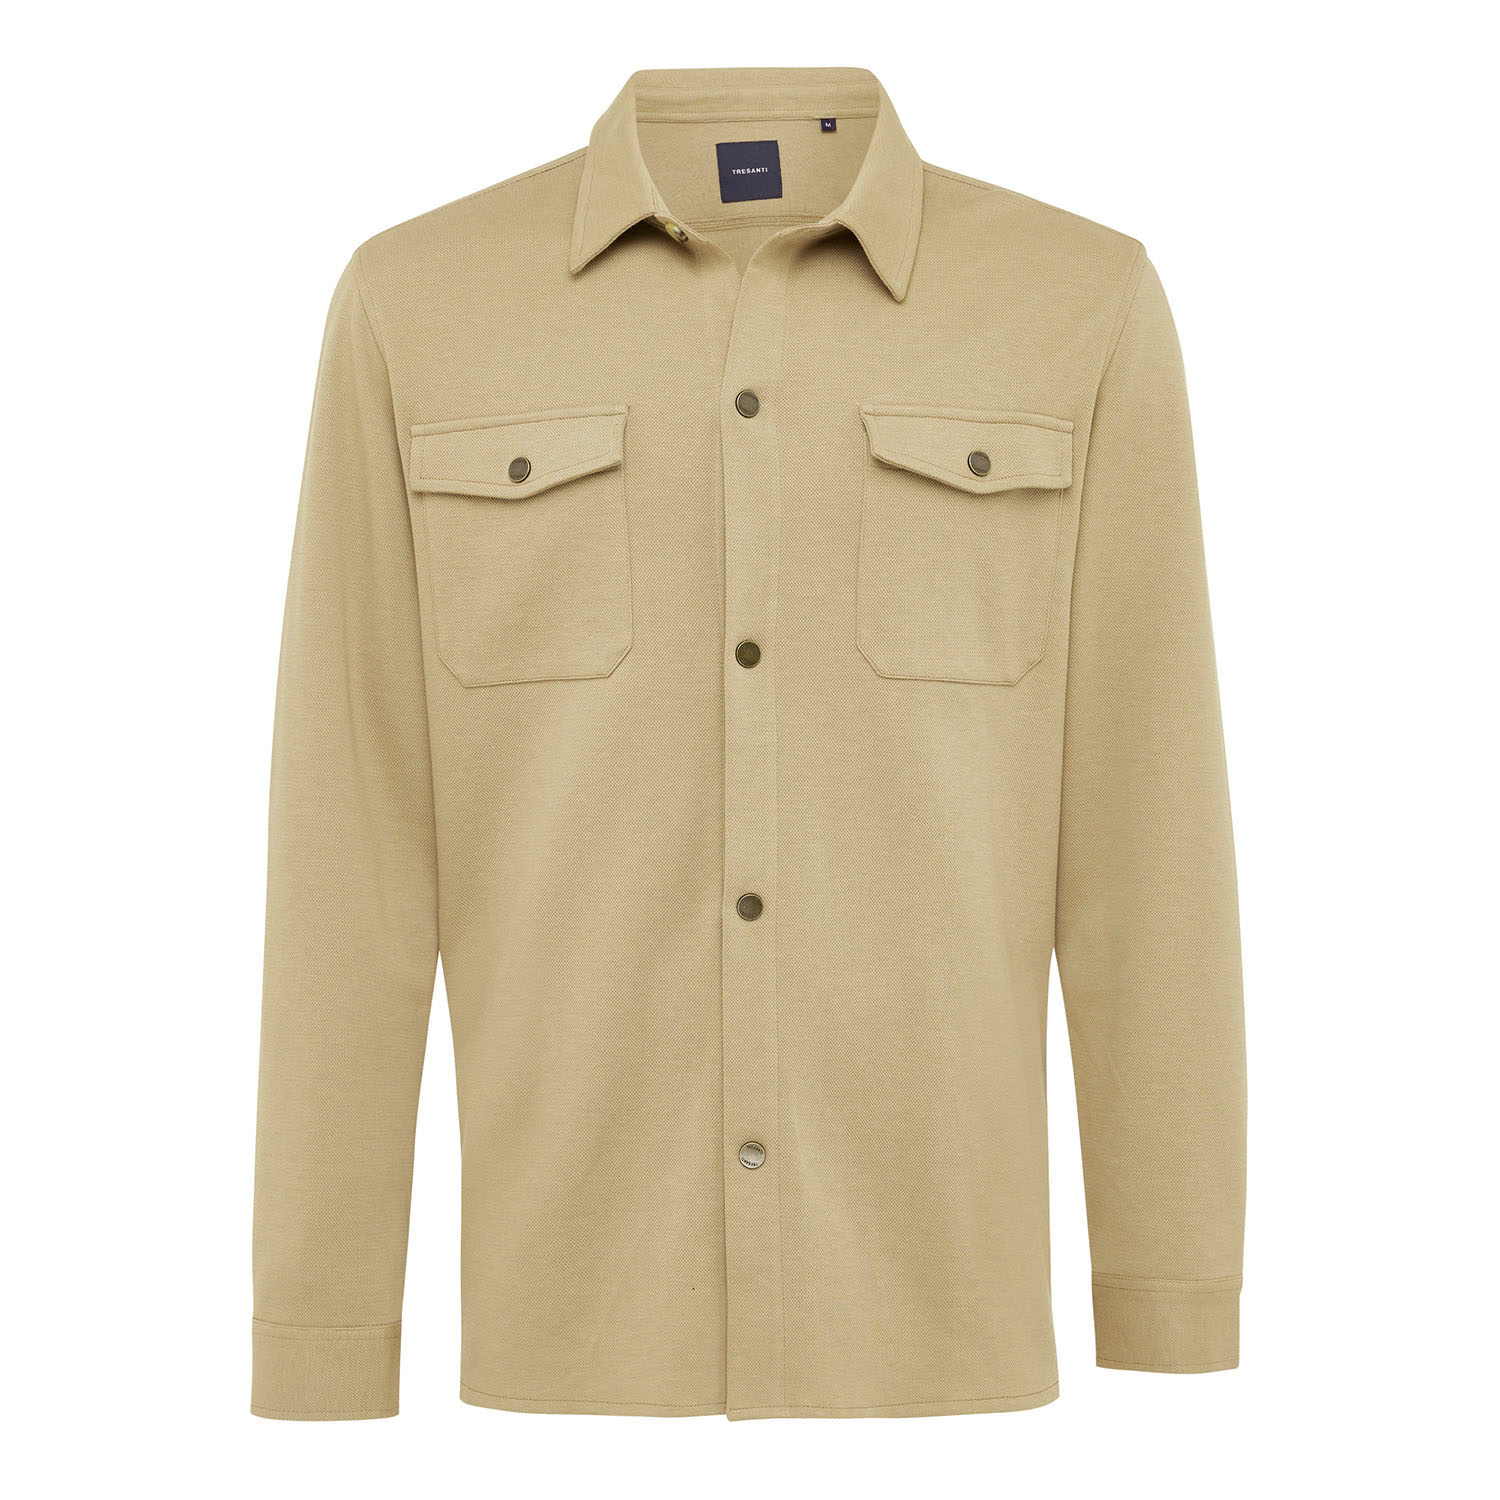 ELEVEN | Jersey overshirt with button closure beige